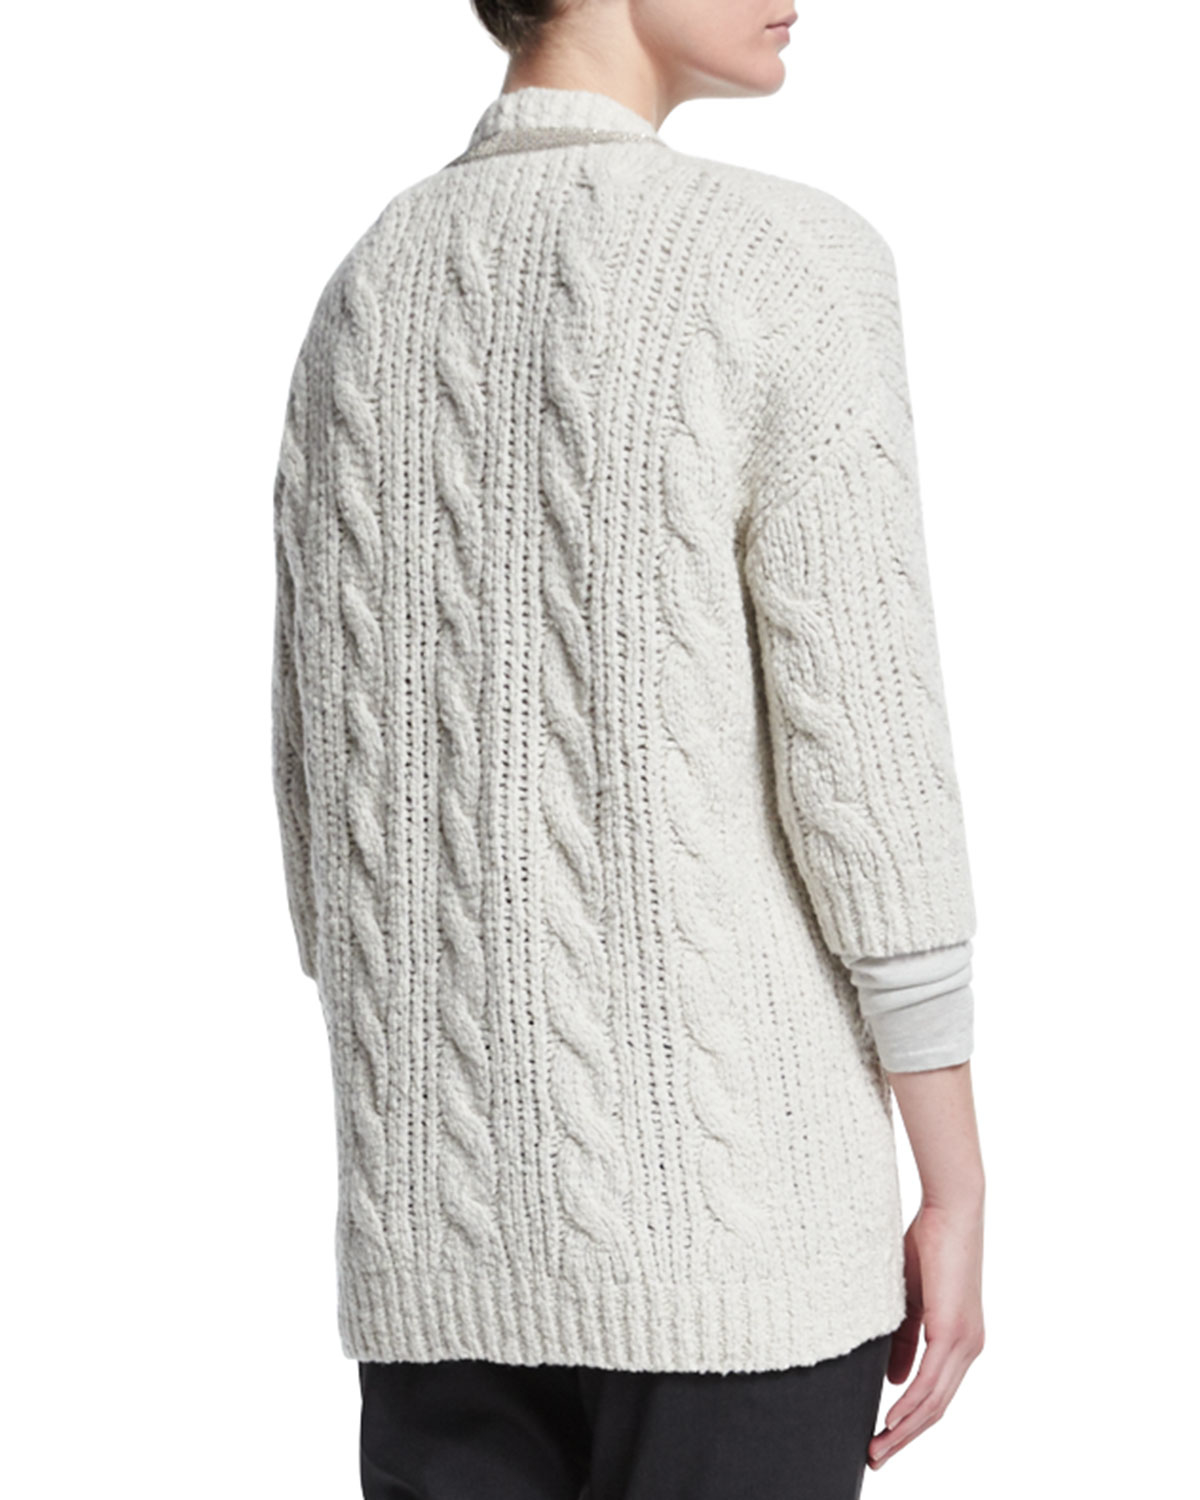 Brunello cucinelli Monili-beaded Cable-knit Cardigan in White | Lyst